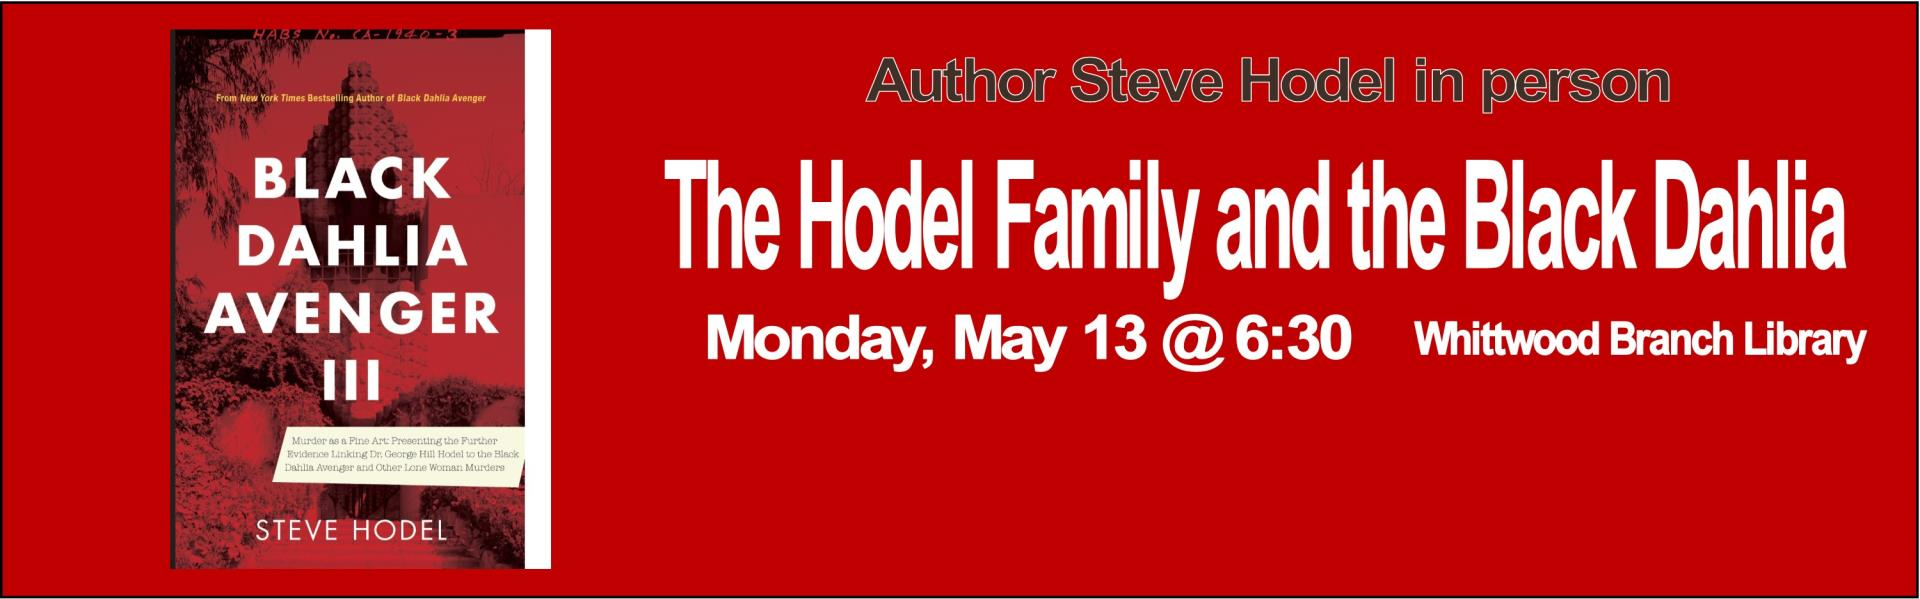 Hodel-The Hodel Family and the black Dahlia-Monday, May 13 @ 6:30 p.m.